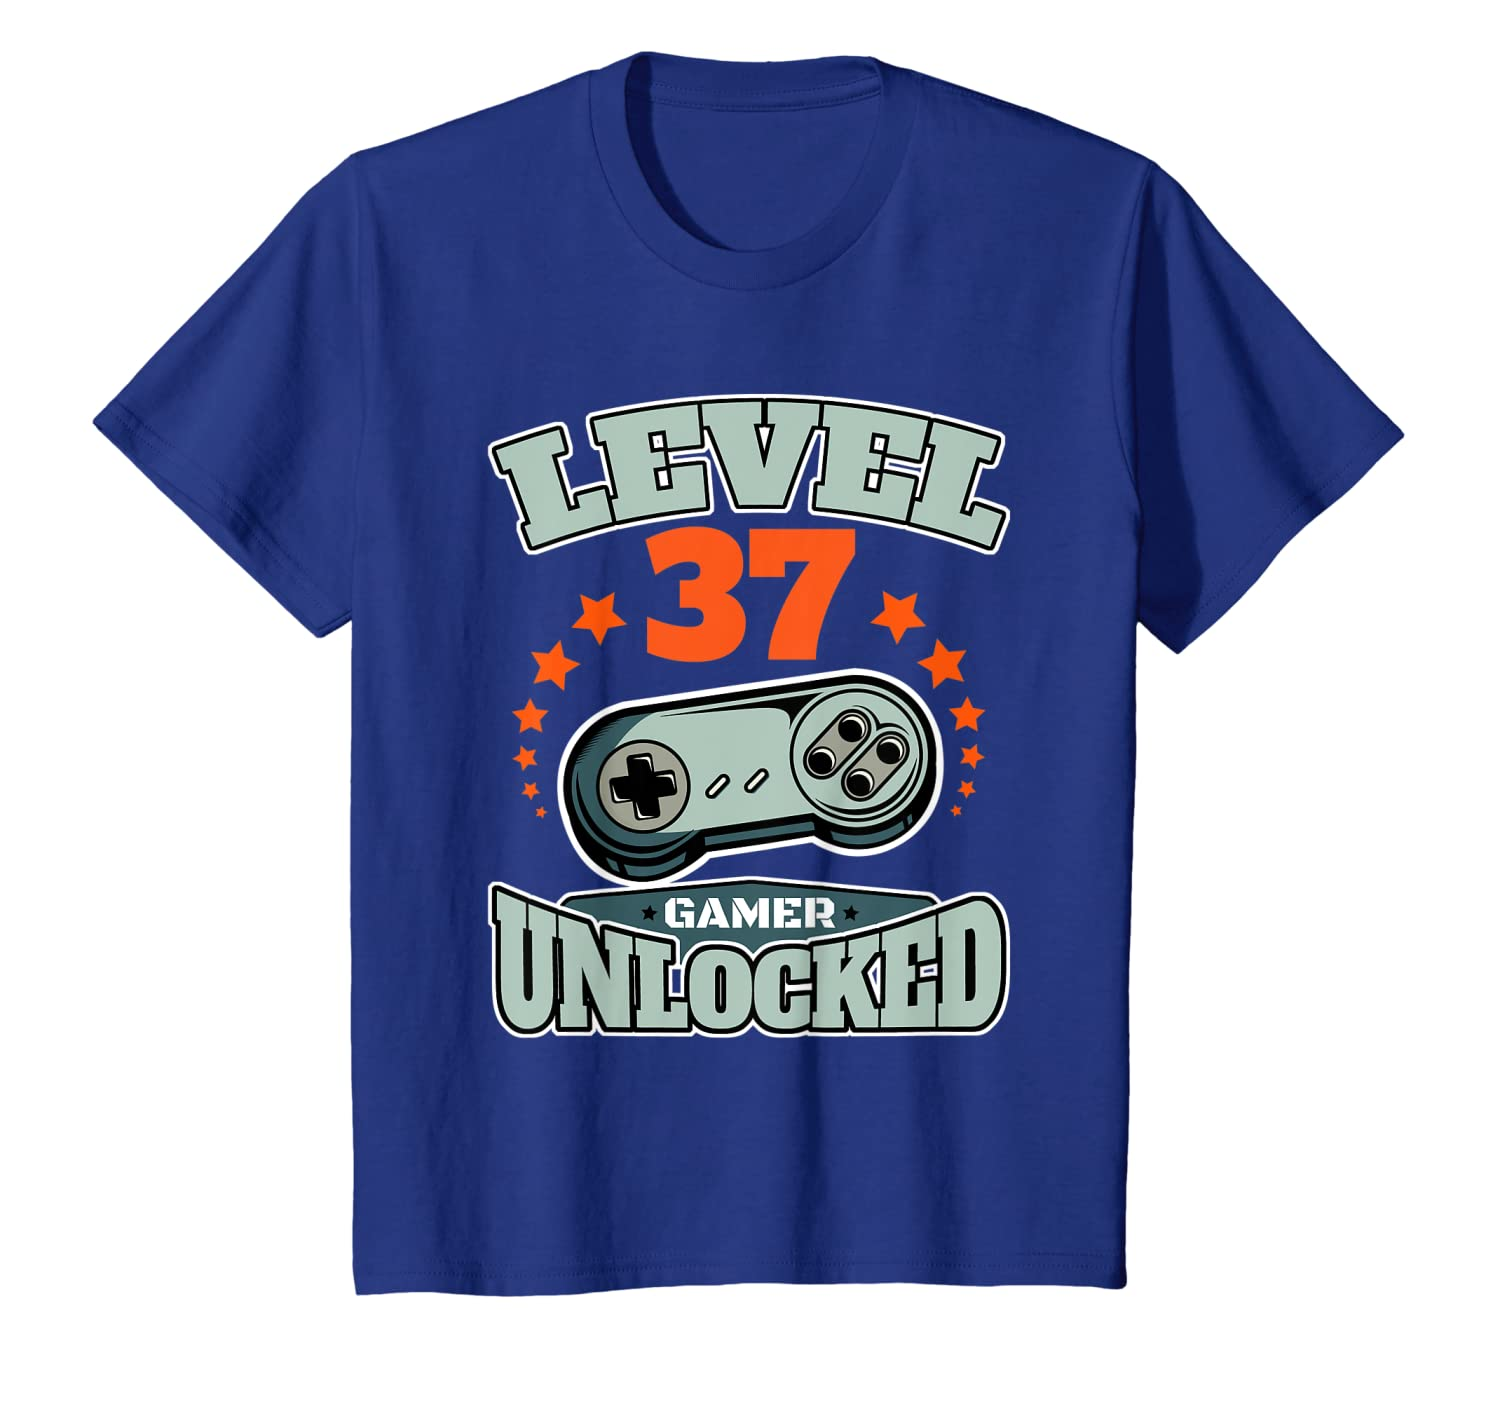 Level 37 Unlocked 37th Birthday or Wedding Anniversary Gift T-Shirt Unisex Tshirt